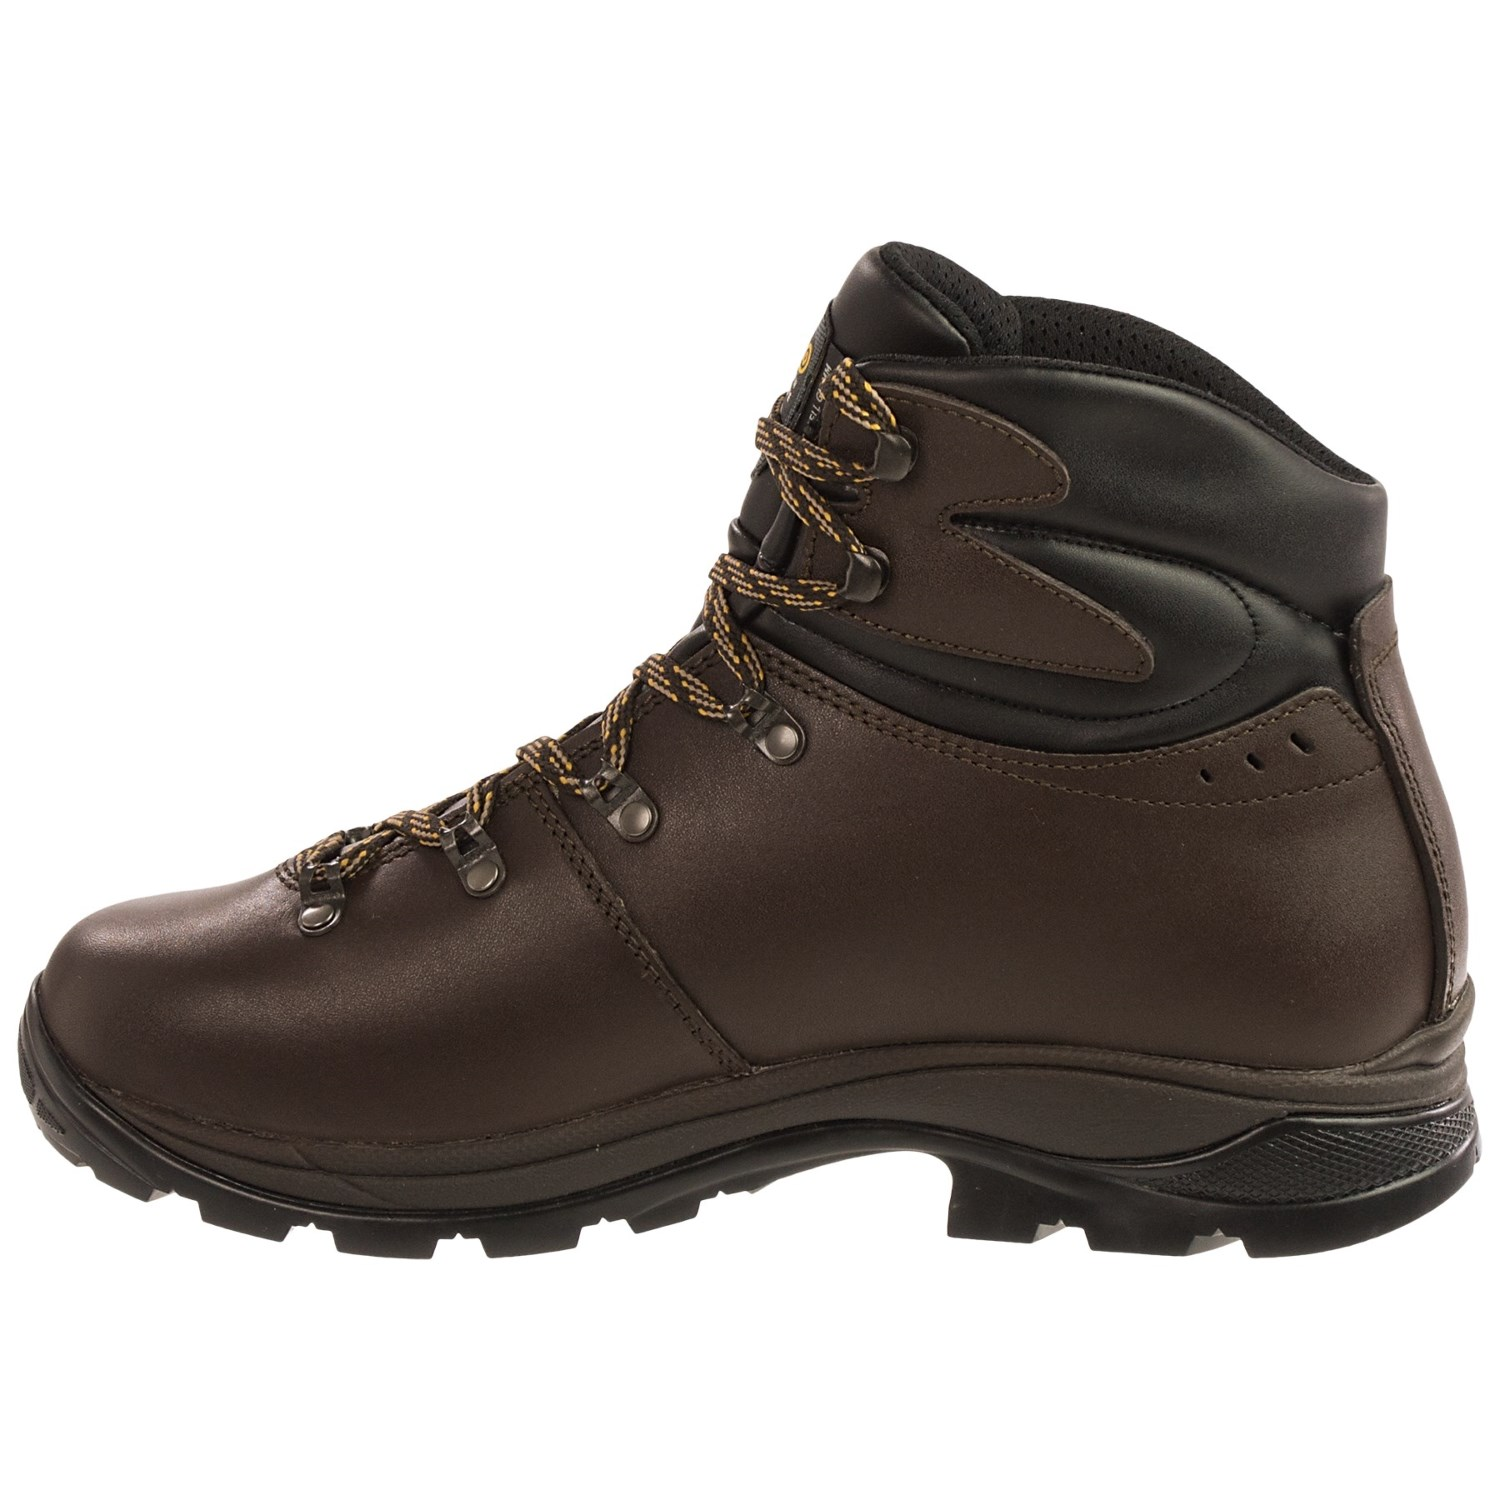 96fa6a1371c Asolo Scafell Gore-Tex® Hiking Boots (For Men) - Save 37%